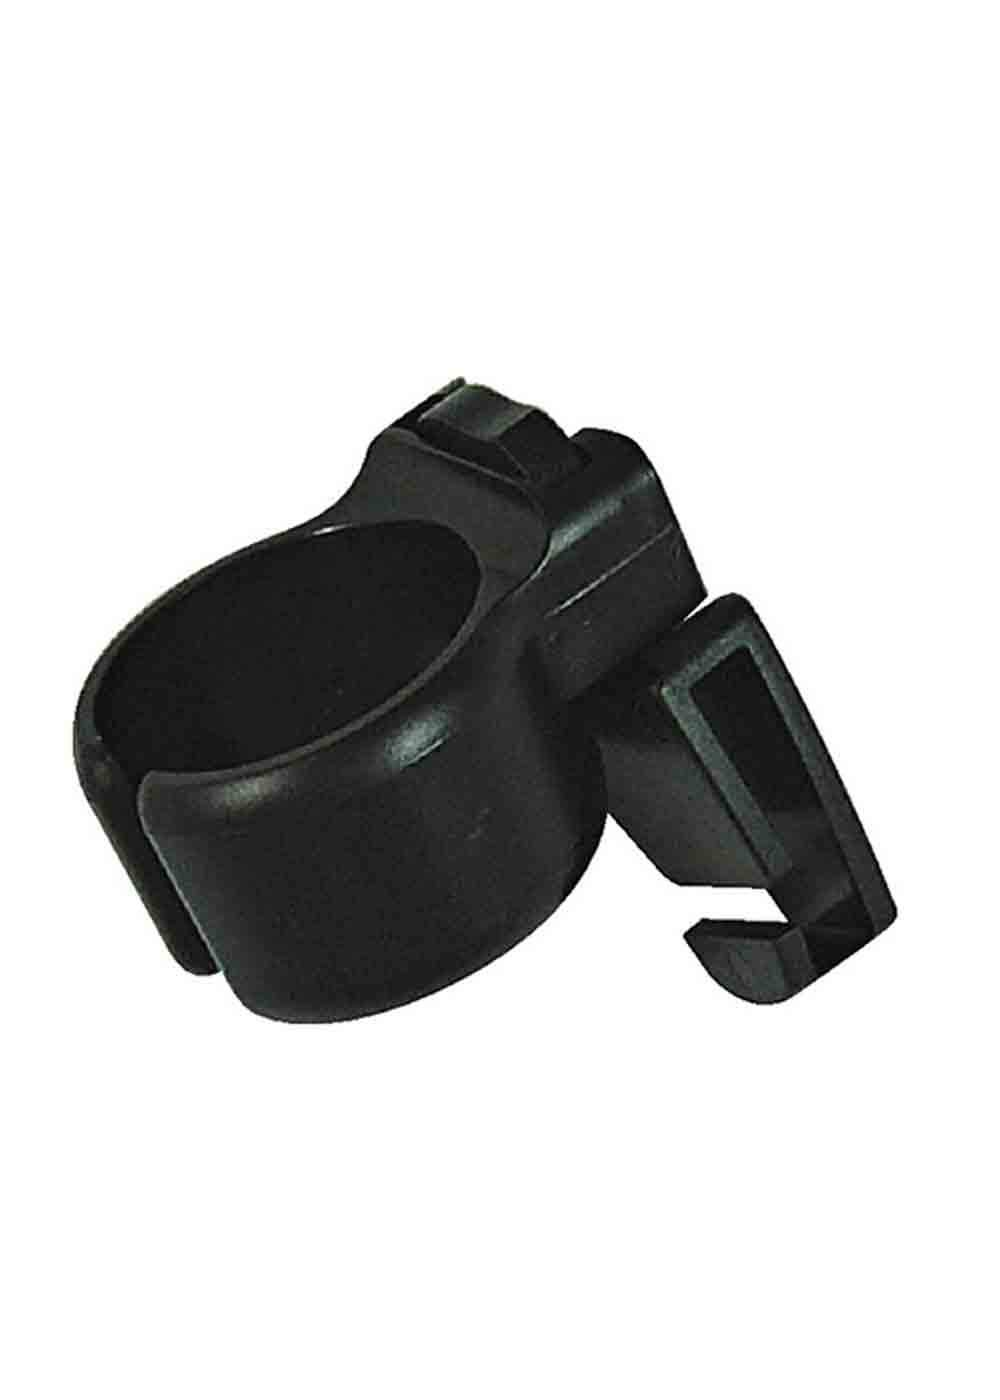 Problue Snorkel Keeper Tiara Quick Release